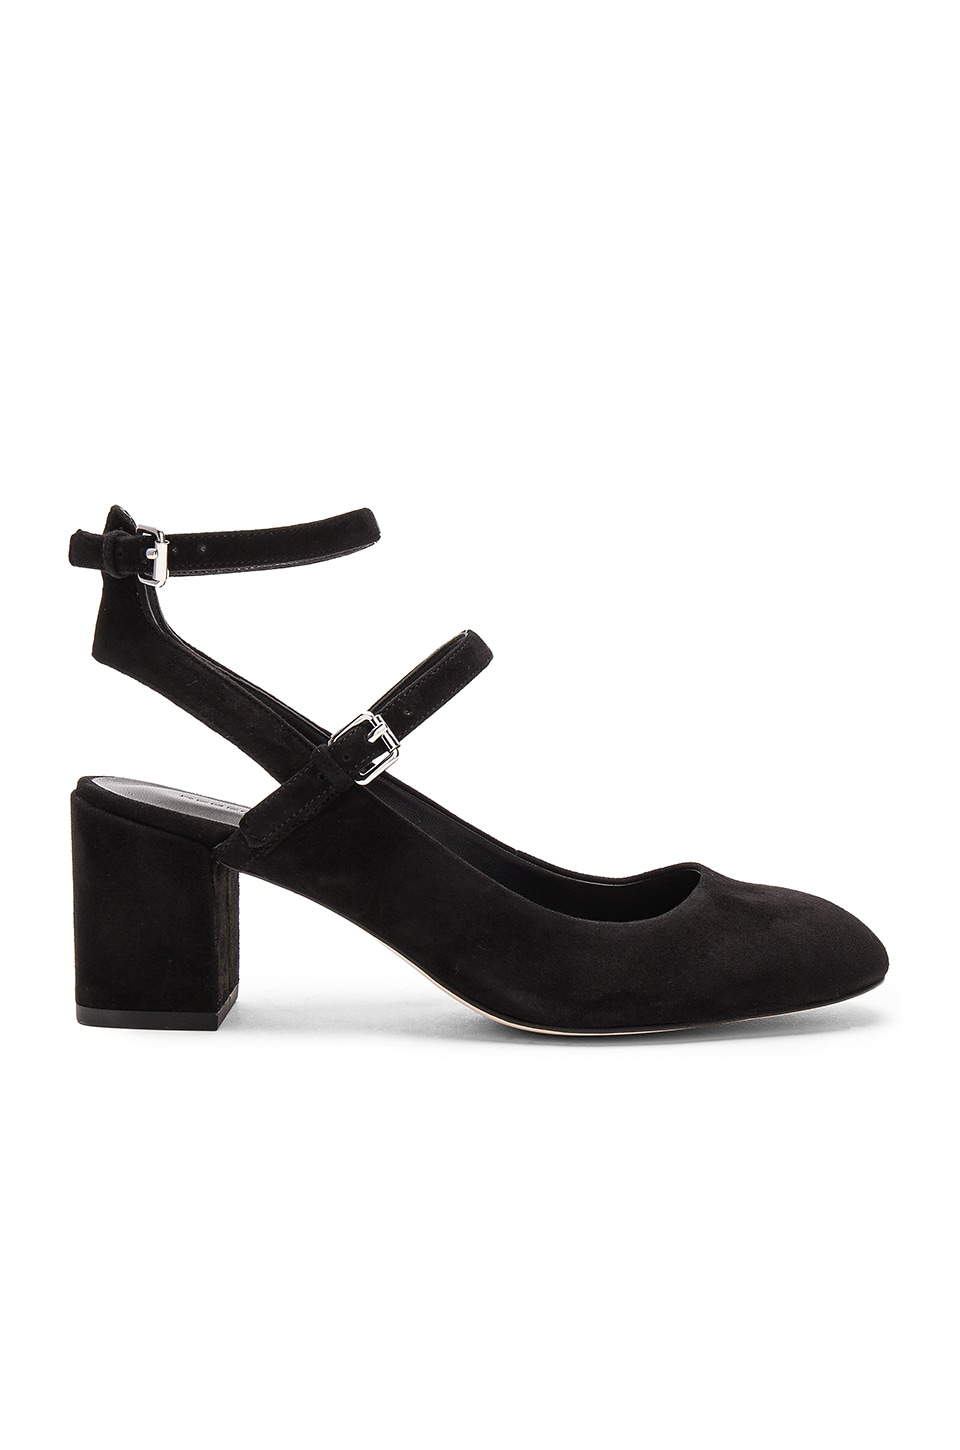 Rebecca Minkoff Brooke Heel in Black Kid Suede